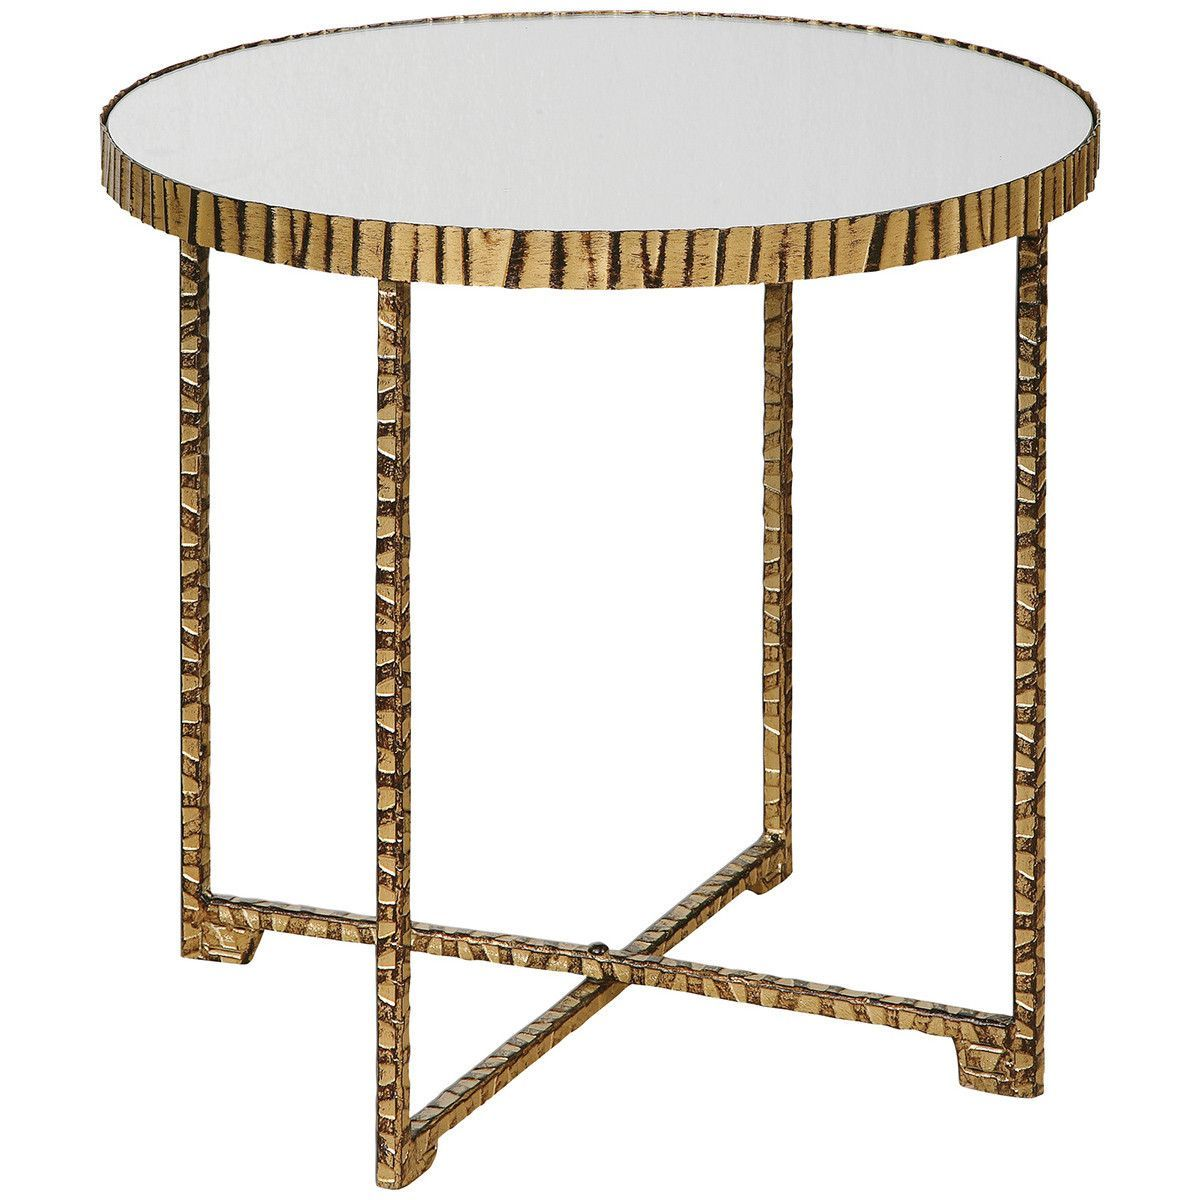 uttermost myeshia round accent table products metal blythe bedside cloth mirrored hall card modular furniture octagon side garden drinks cooler essential living room patio dining